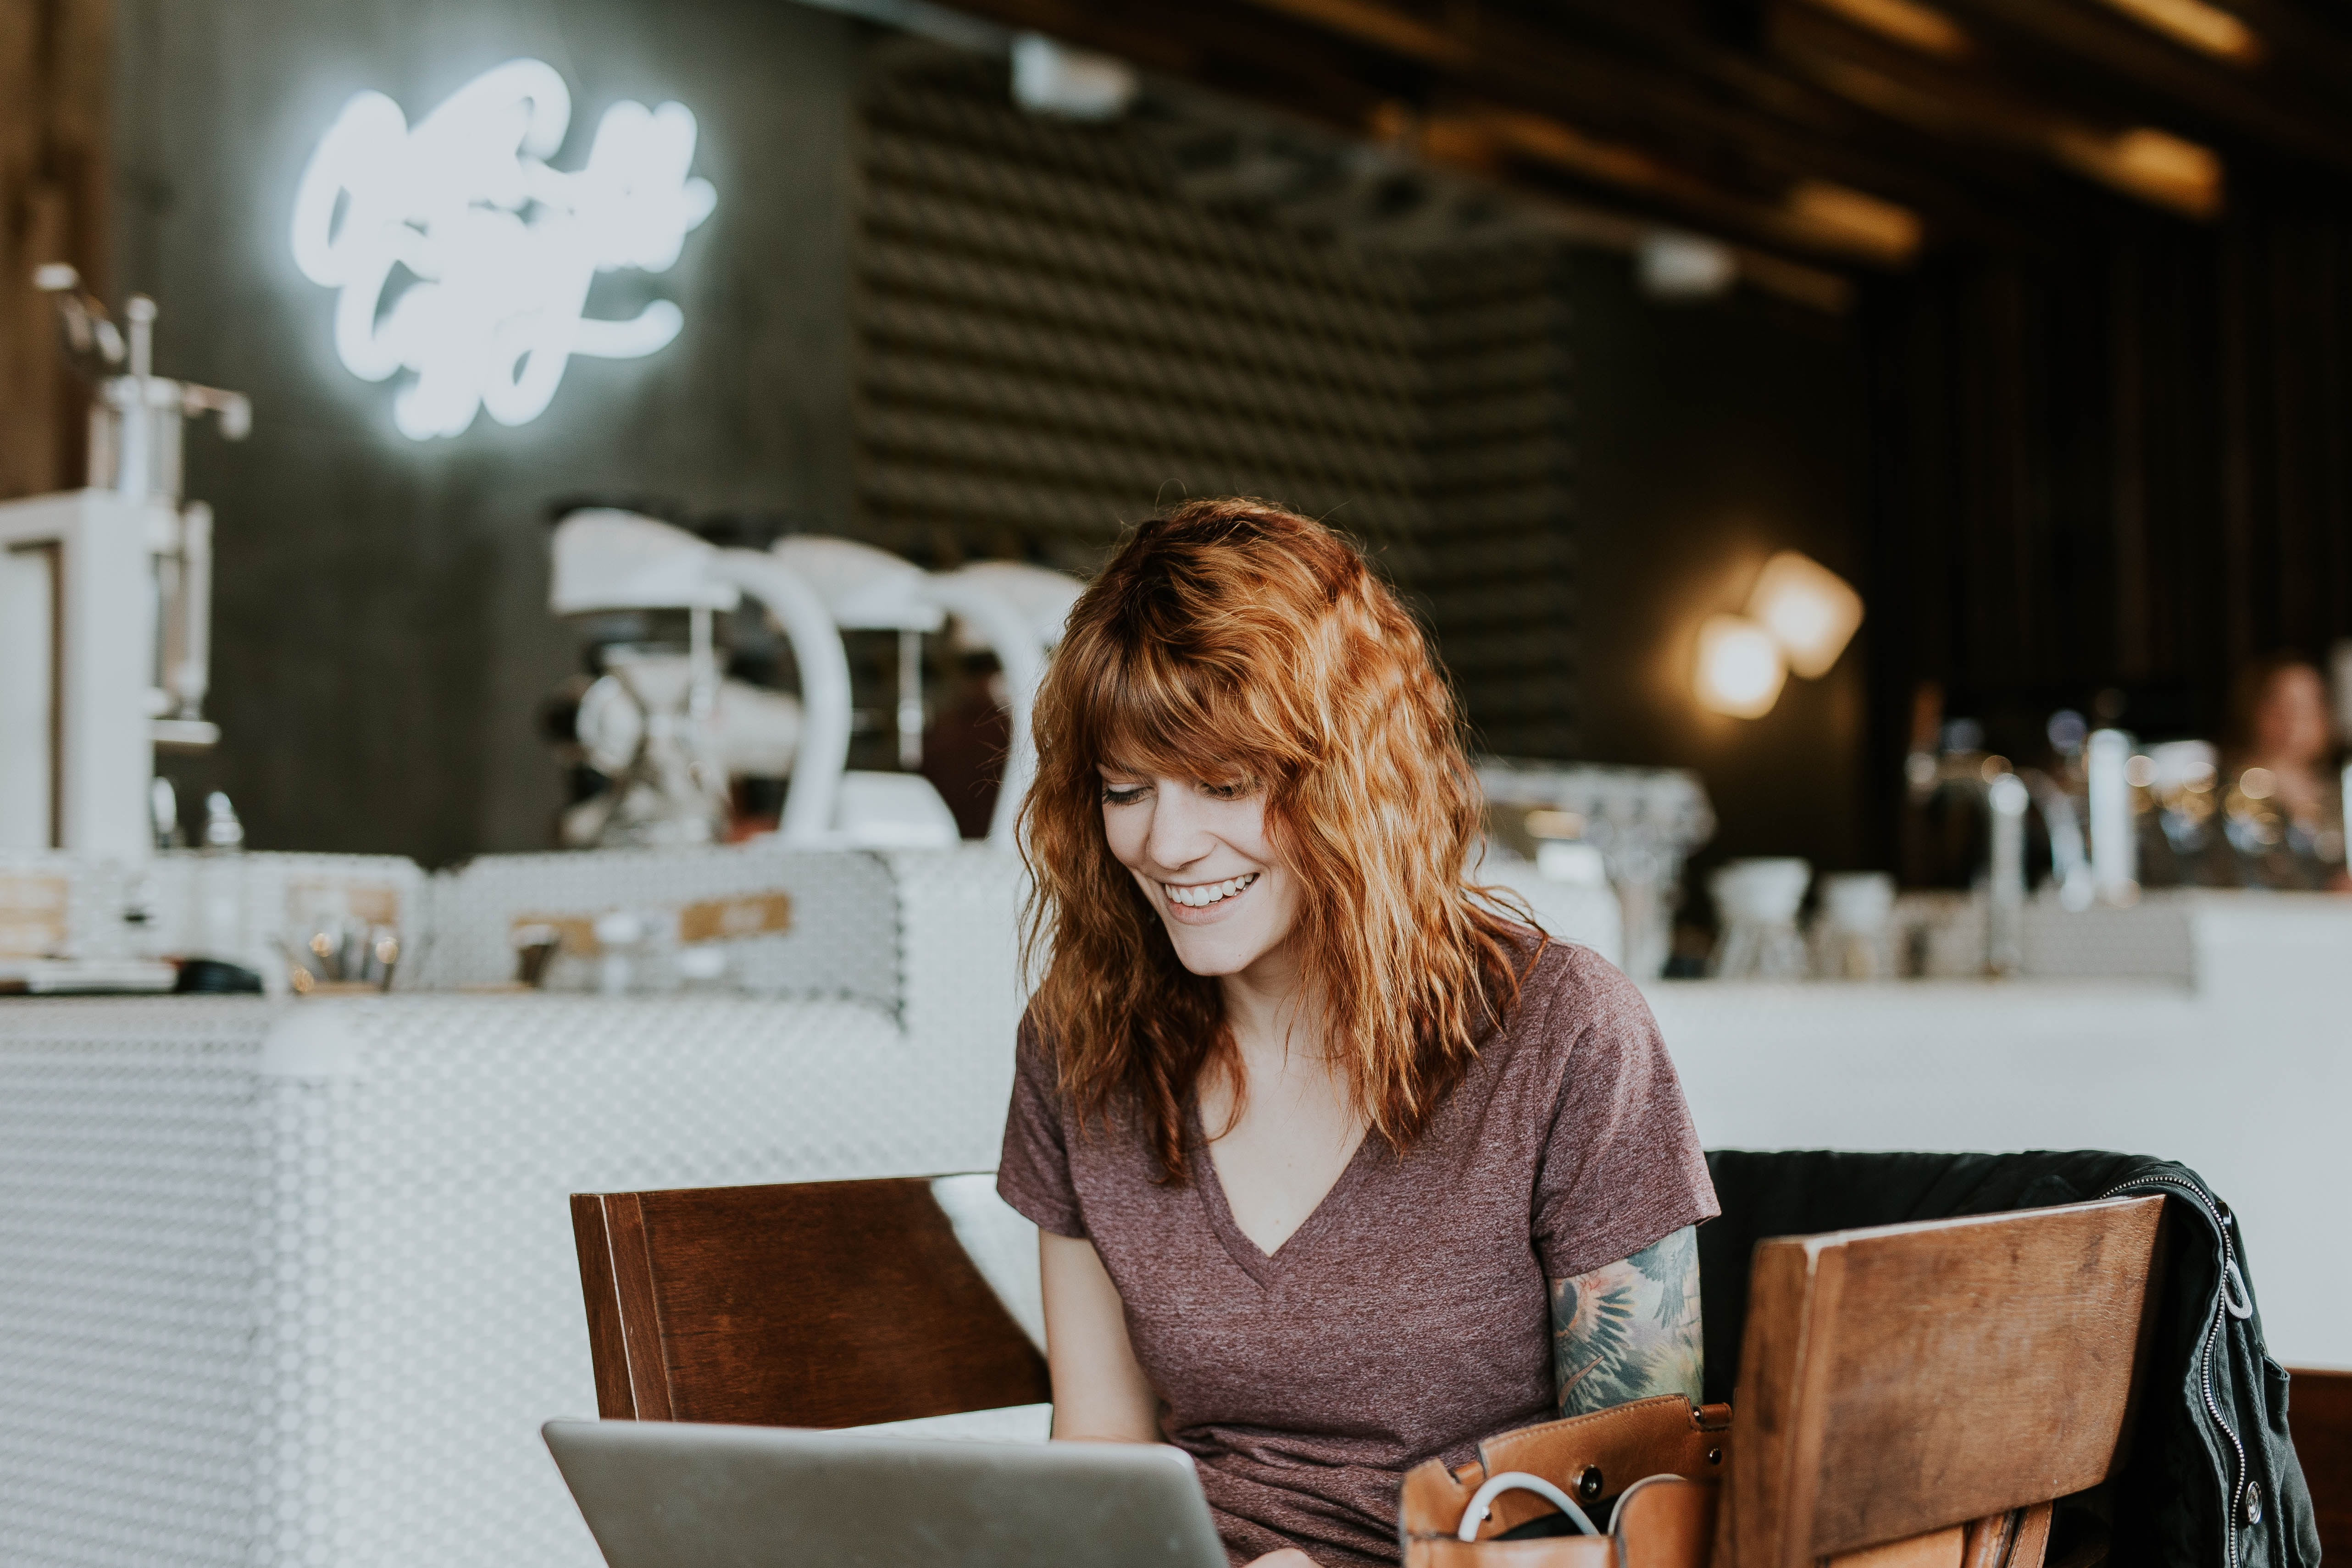 A 3-step beginner's guide for creating and selling restaurant merch online